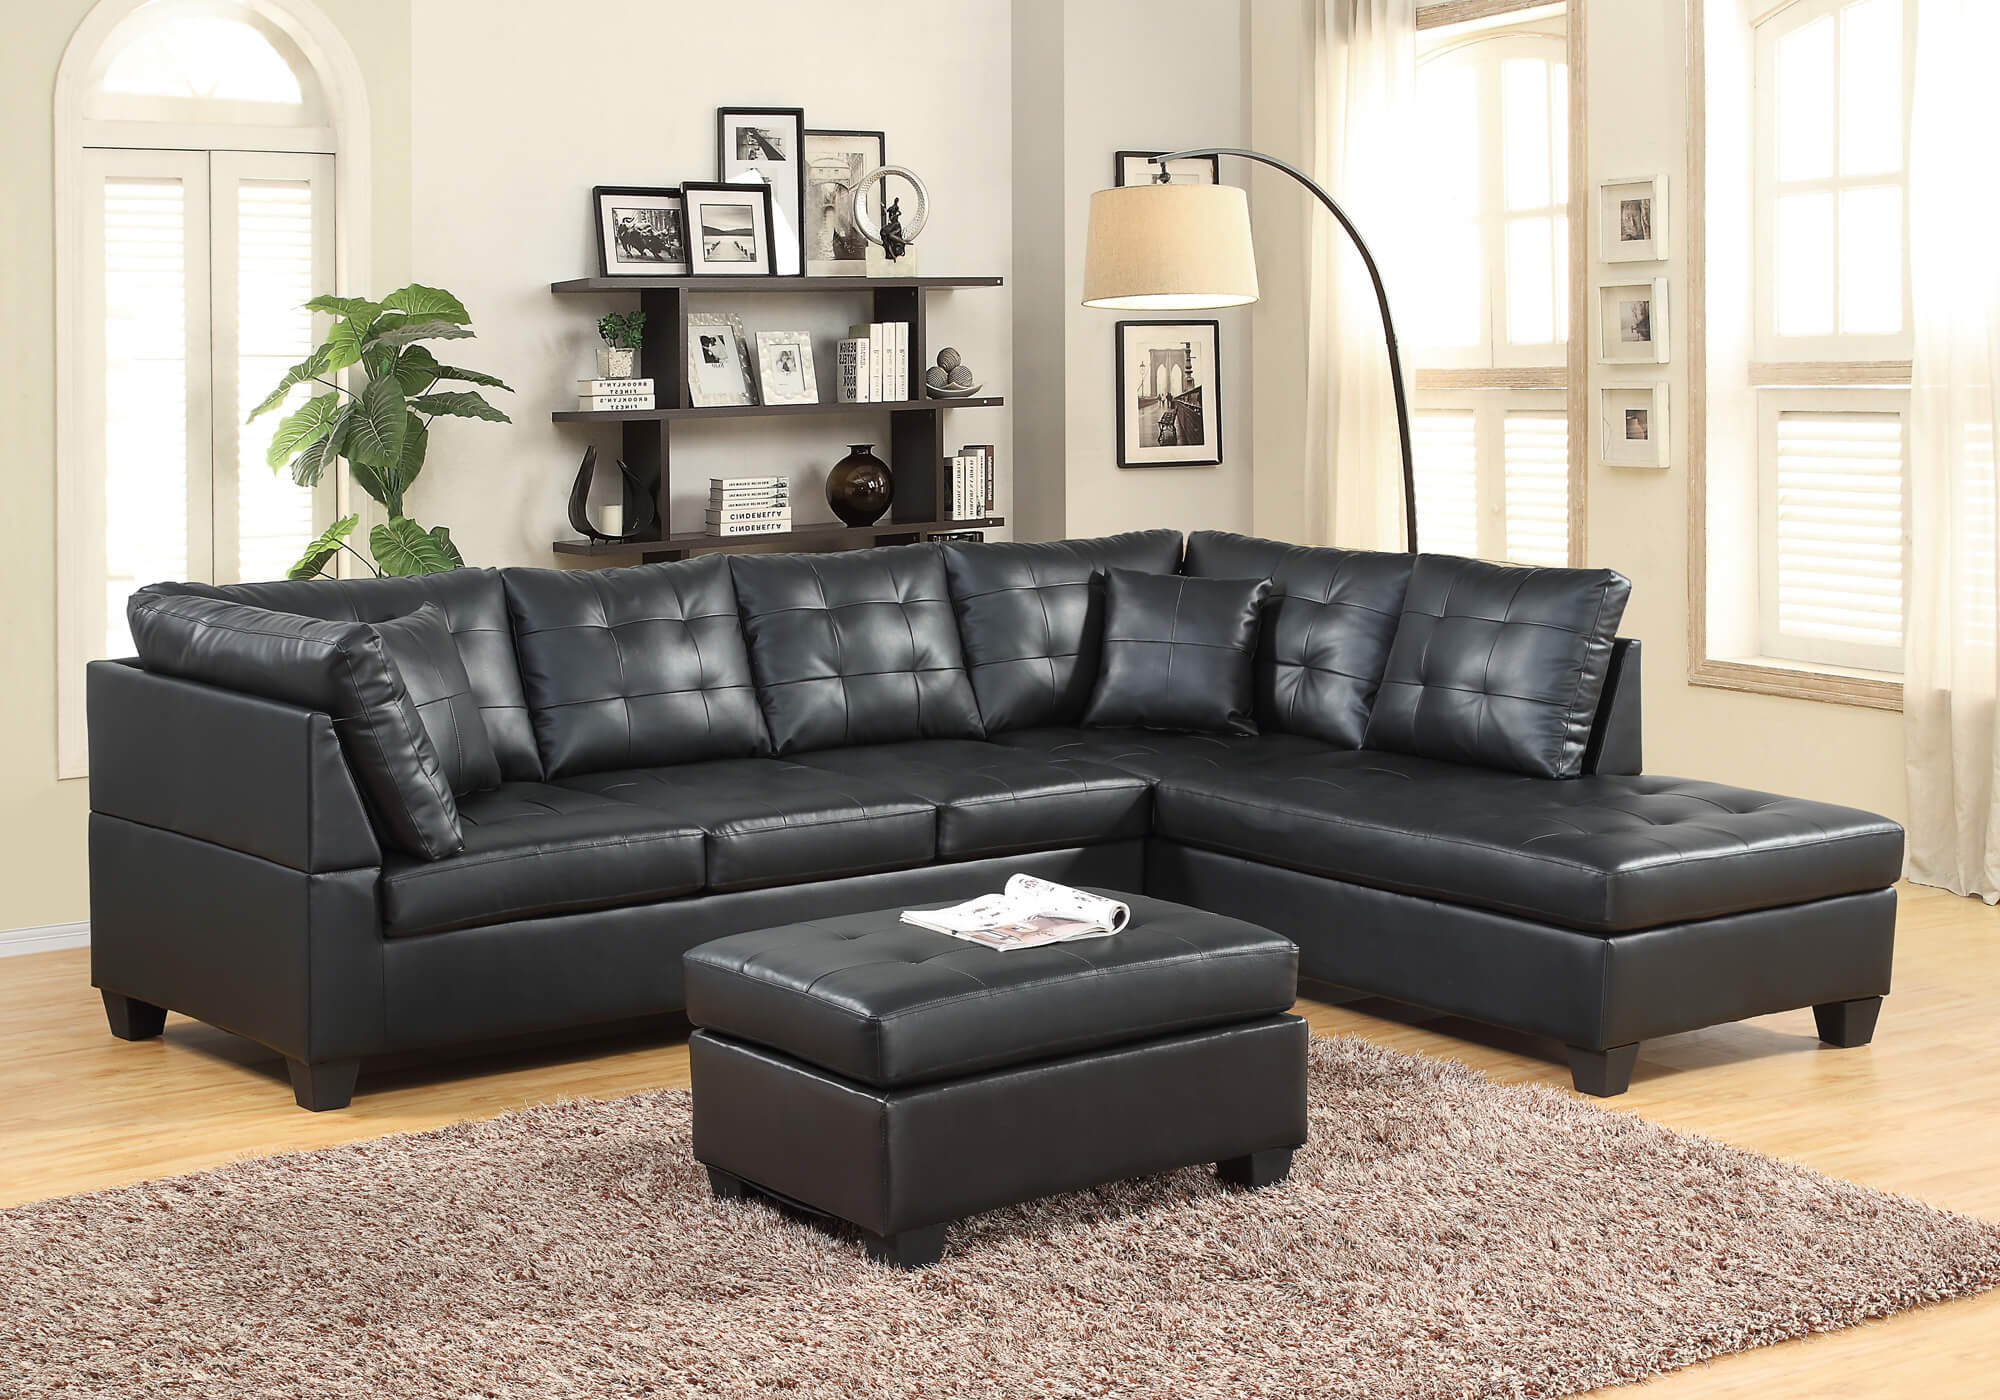 Black leather like sectiona sectional sofa sets for Family room leather furniture